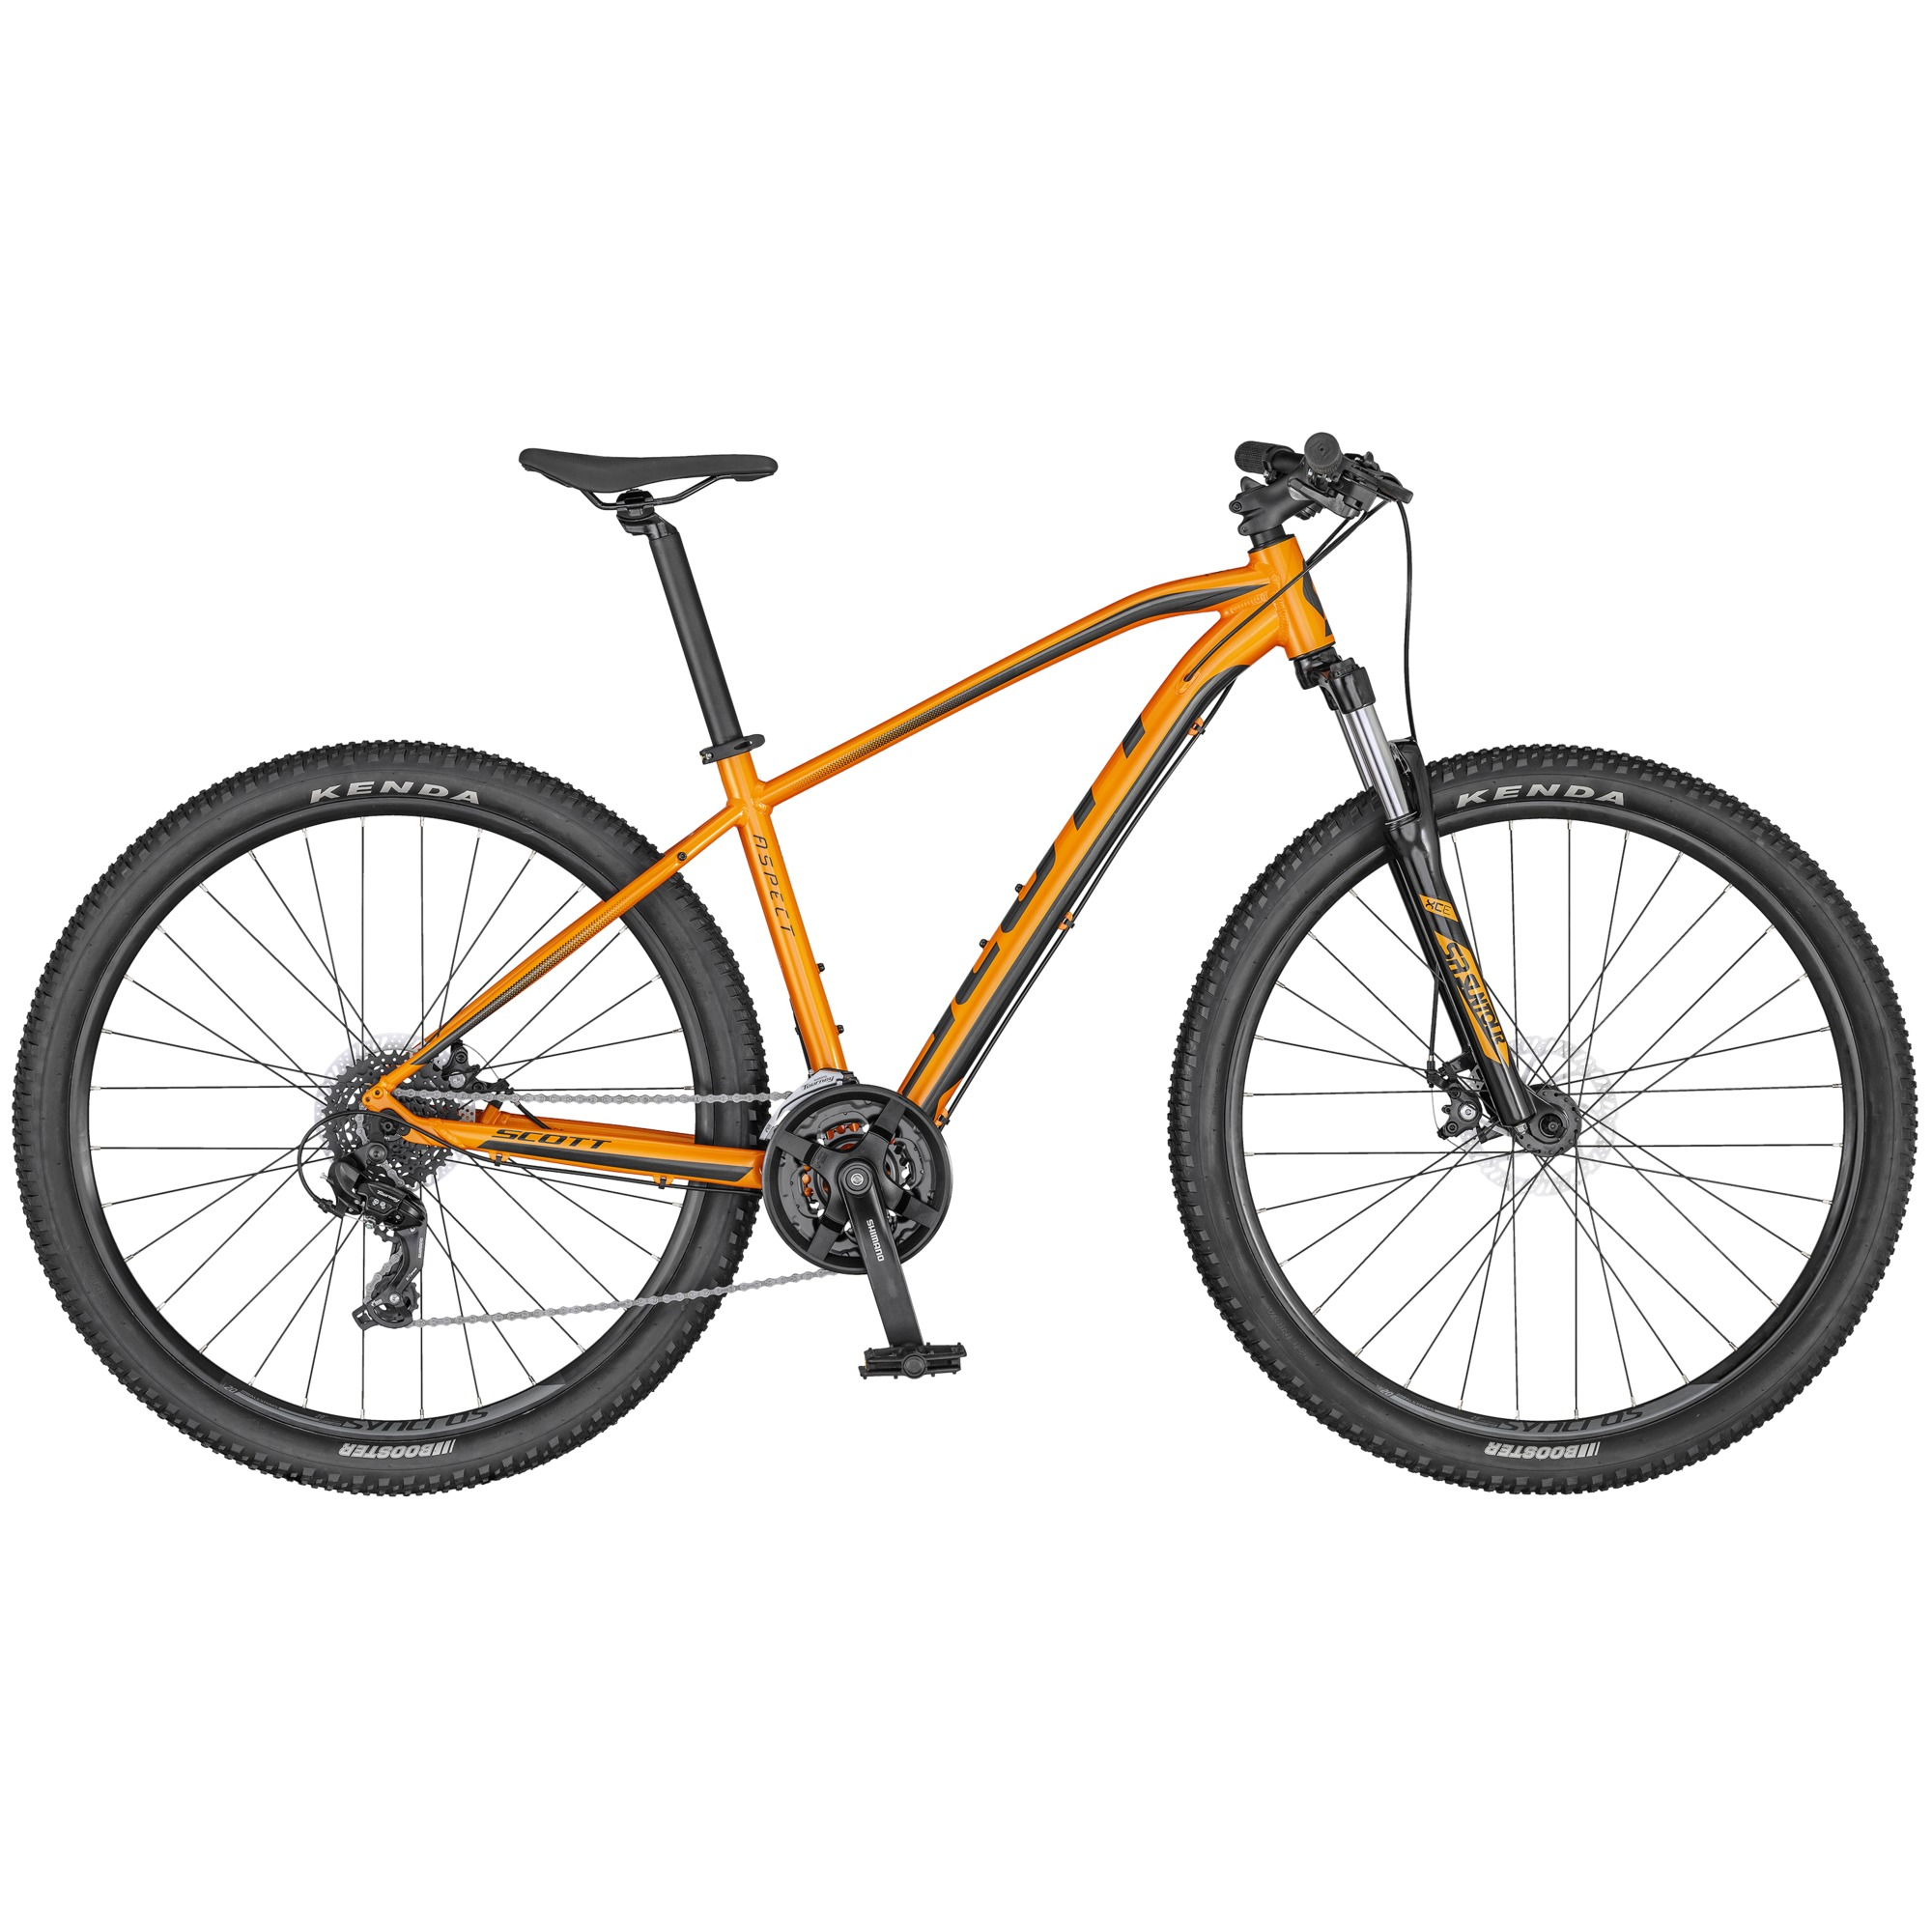 2020 Scott Aspect 970 Orange/DK Grey Mountain Bike | MTB